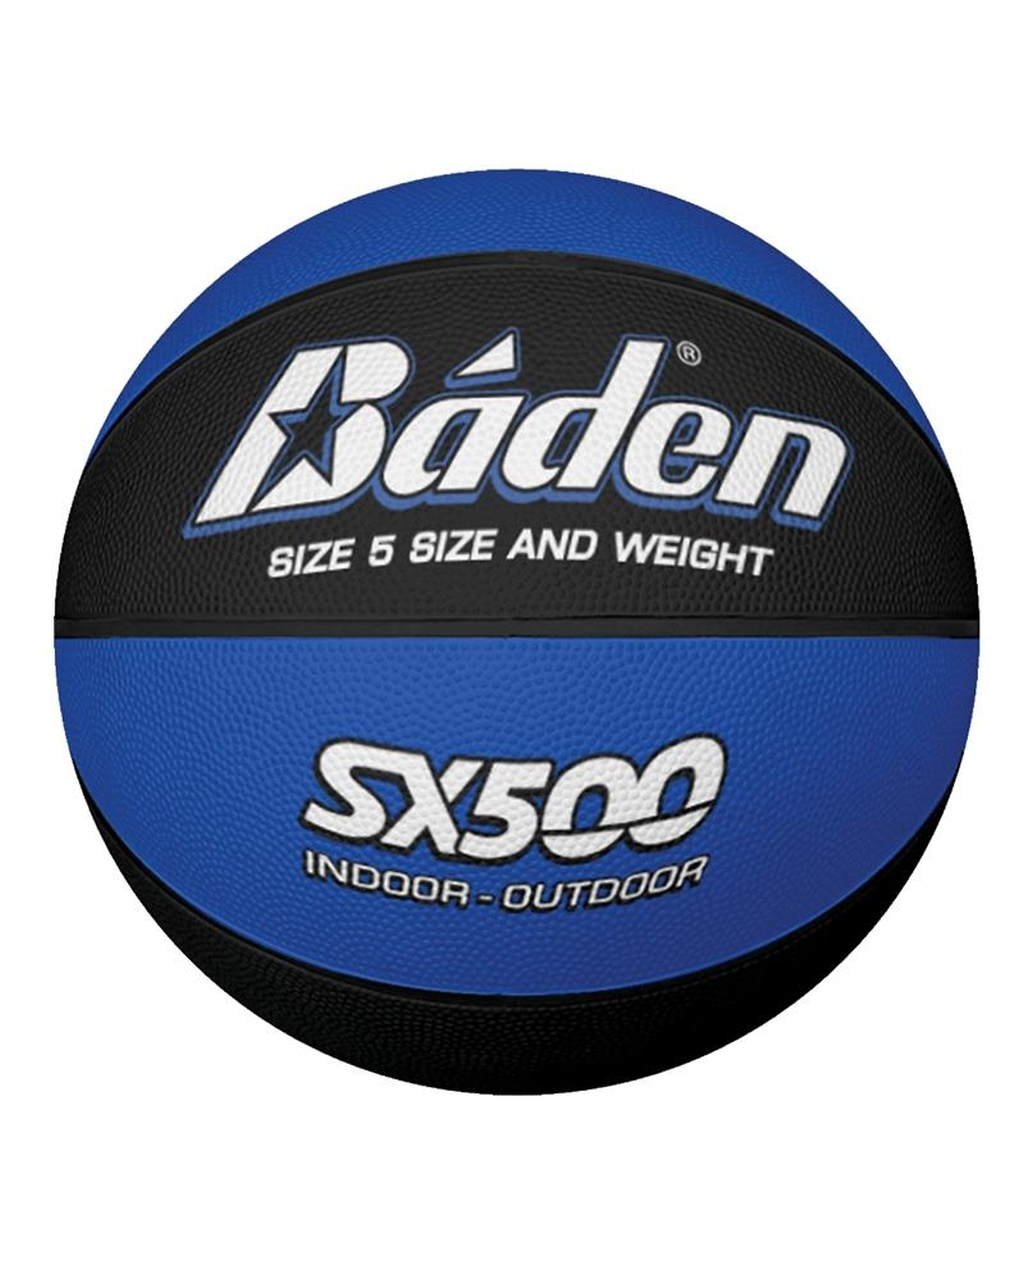 Baden SX Series Basketball Size 5